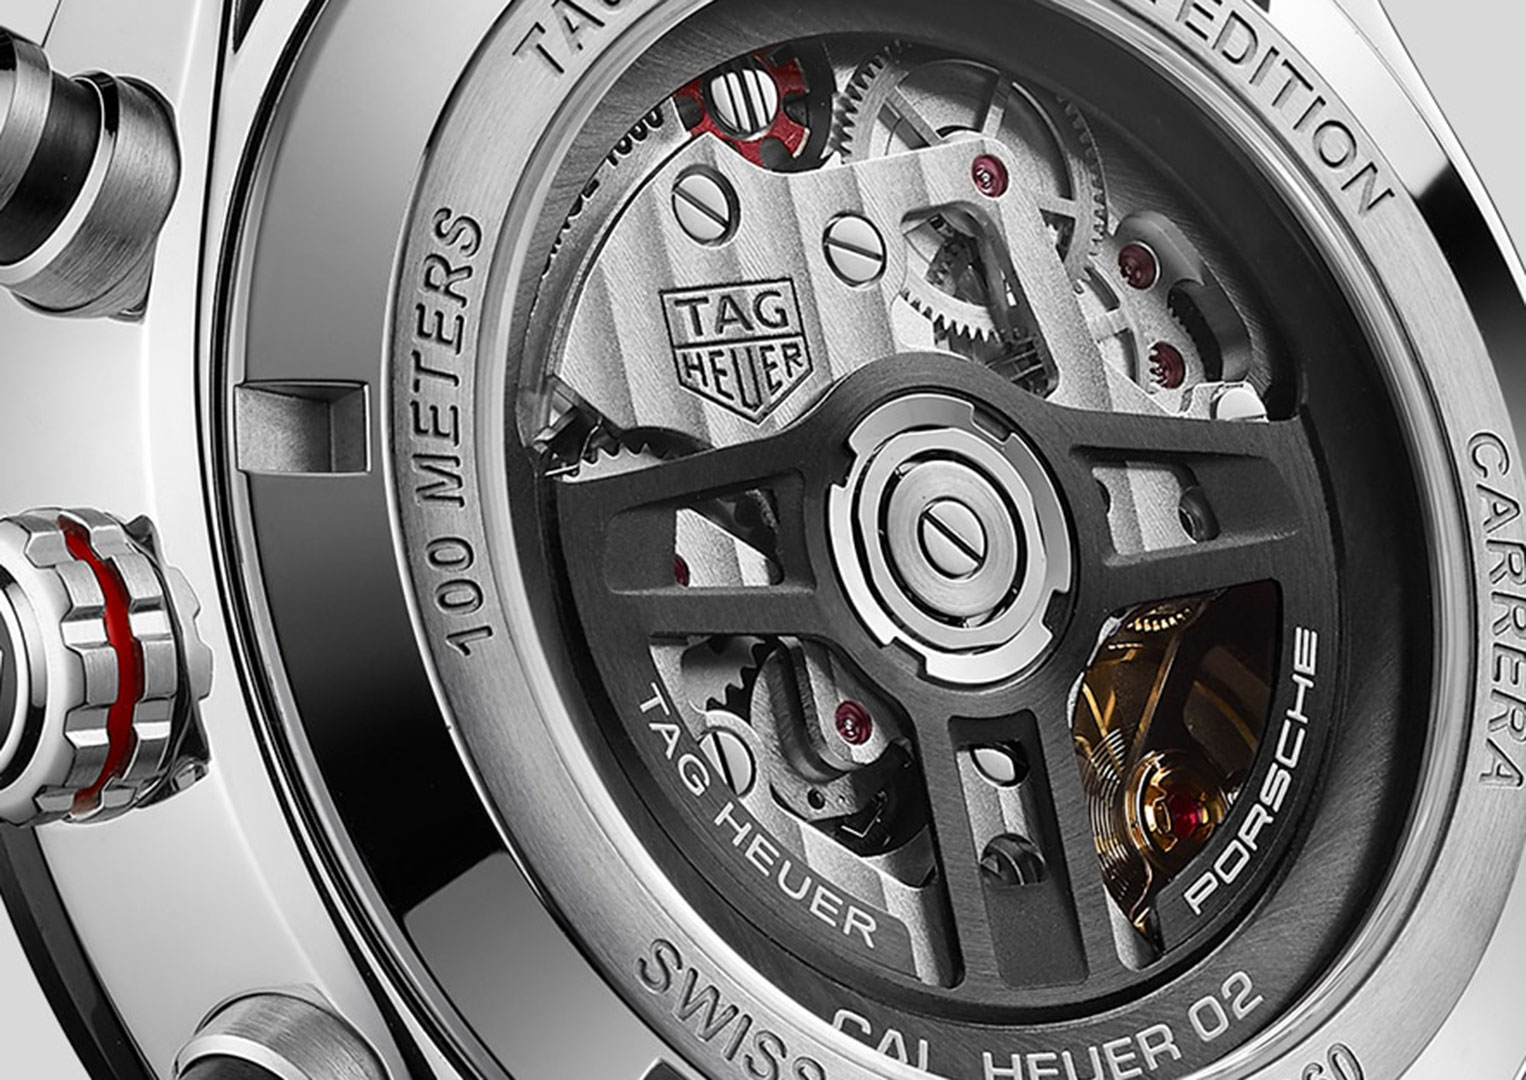 Heuer became TAG Heuer after the TAG group purchased a majority stake of the company in 1985